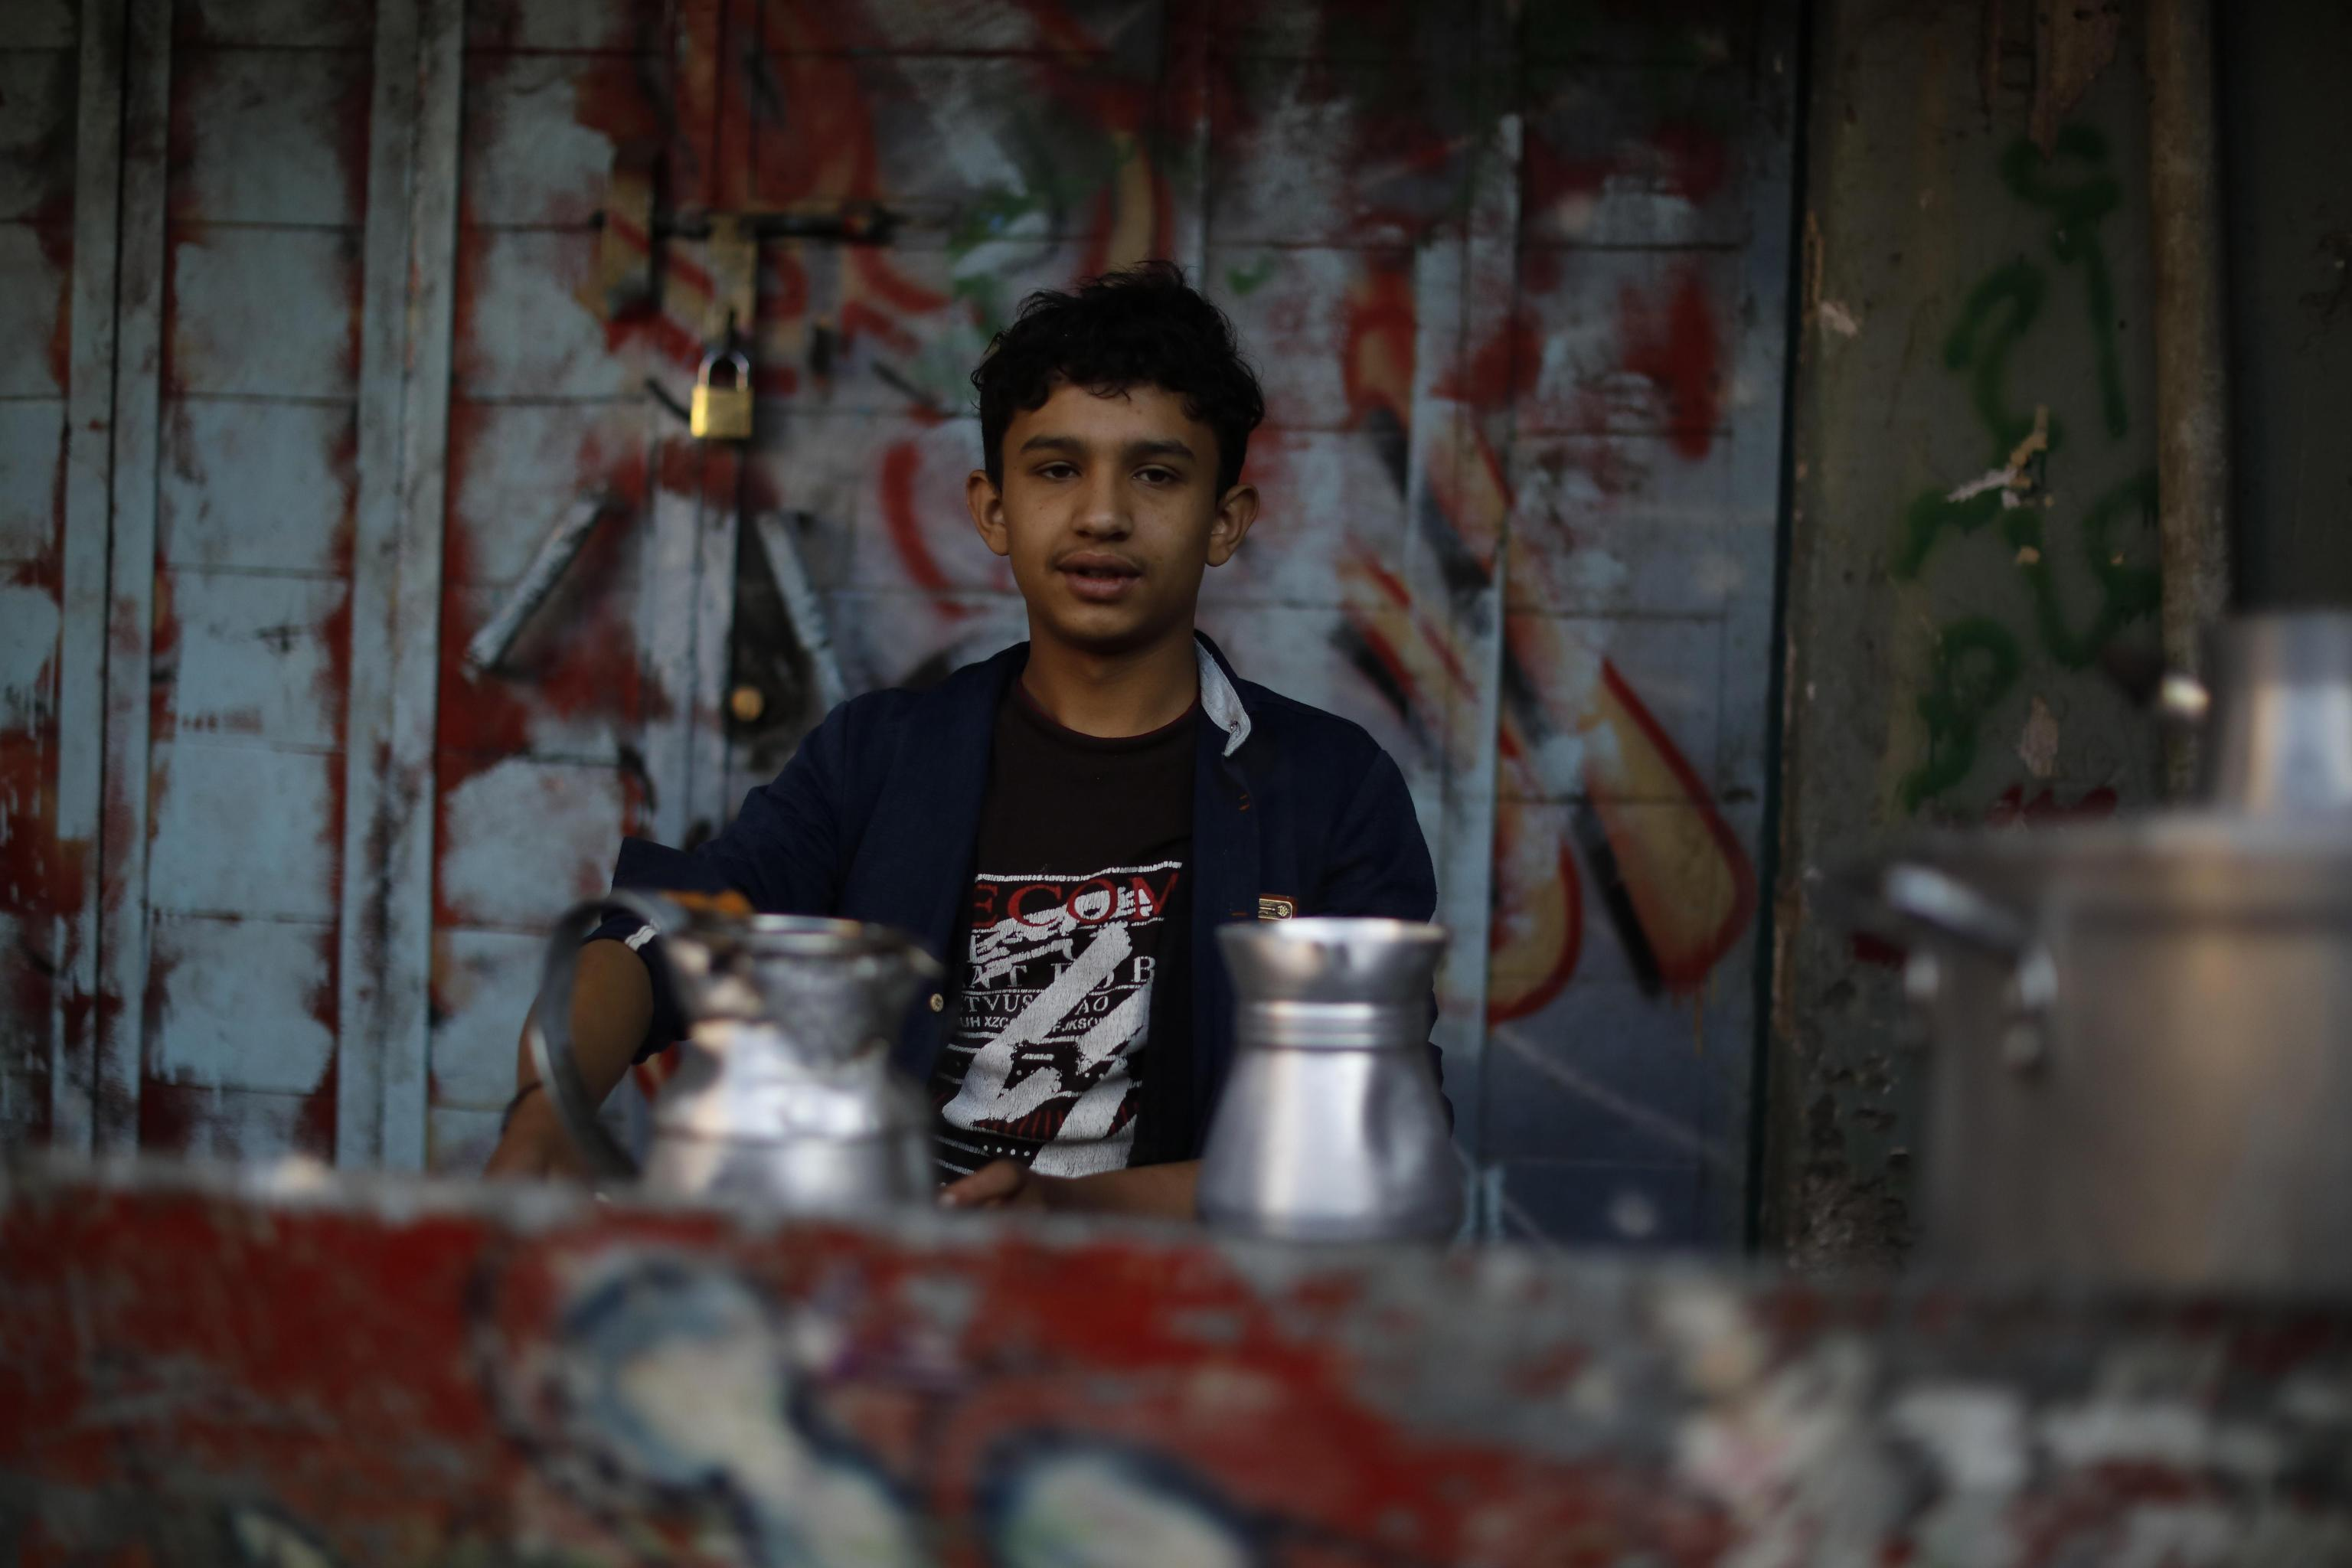 epa07929508 A man prepares tea for sale at a market in the old quarter of Sanaâa, Yemen, 18 October 2019. Yemen has been in a state of political crisis since the 2011-street protests, culminating in the outbreak of a fighting in March 2015 when the Saudi-led military coalition launched a massive air campaign against the Houthi rebel group, which overran much of the Arab country.  EPA/YAHYA ARHAB